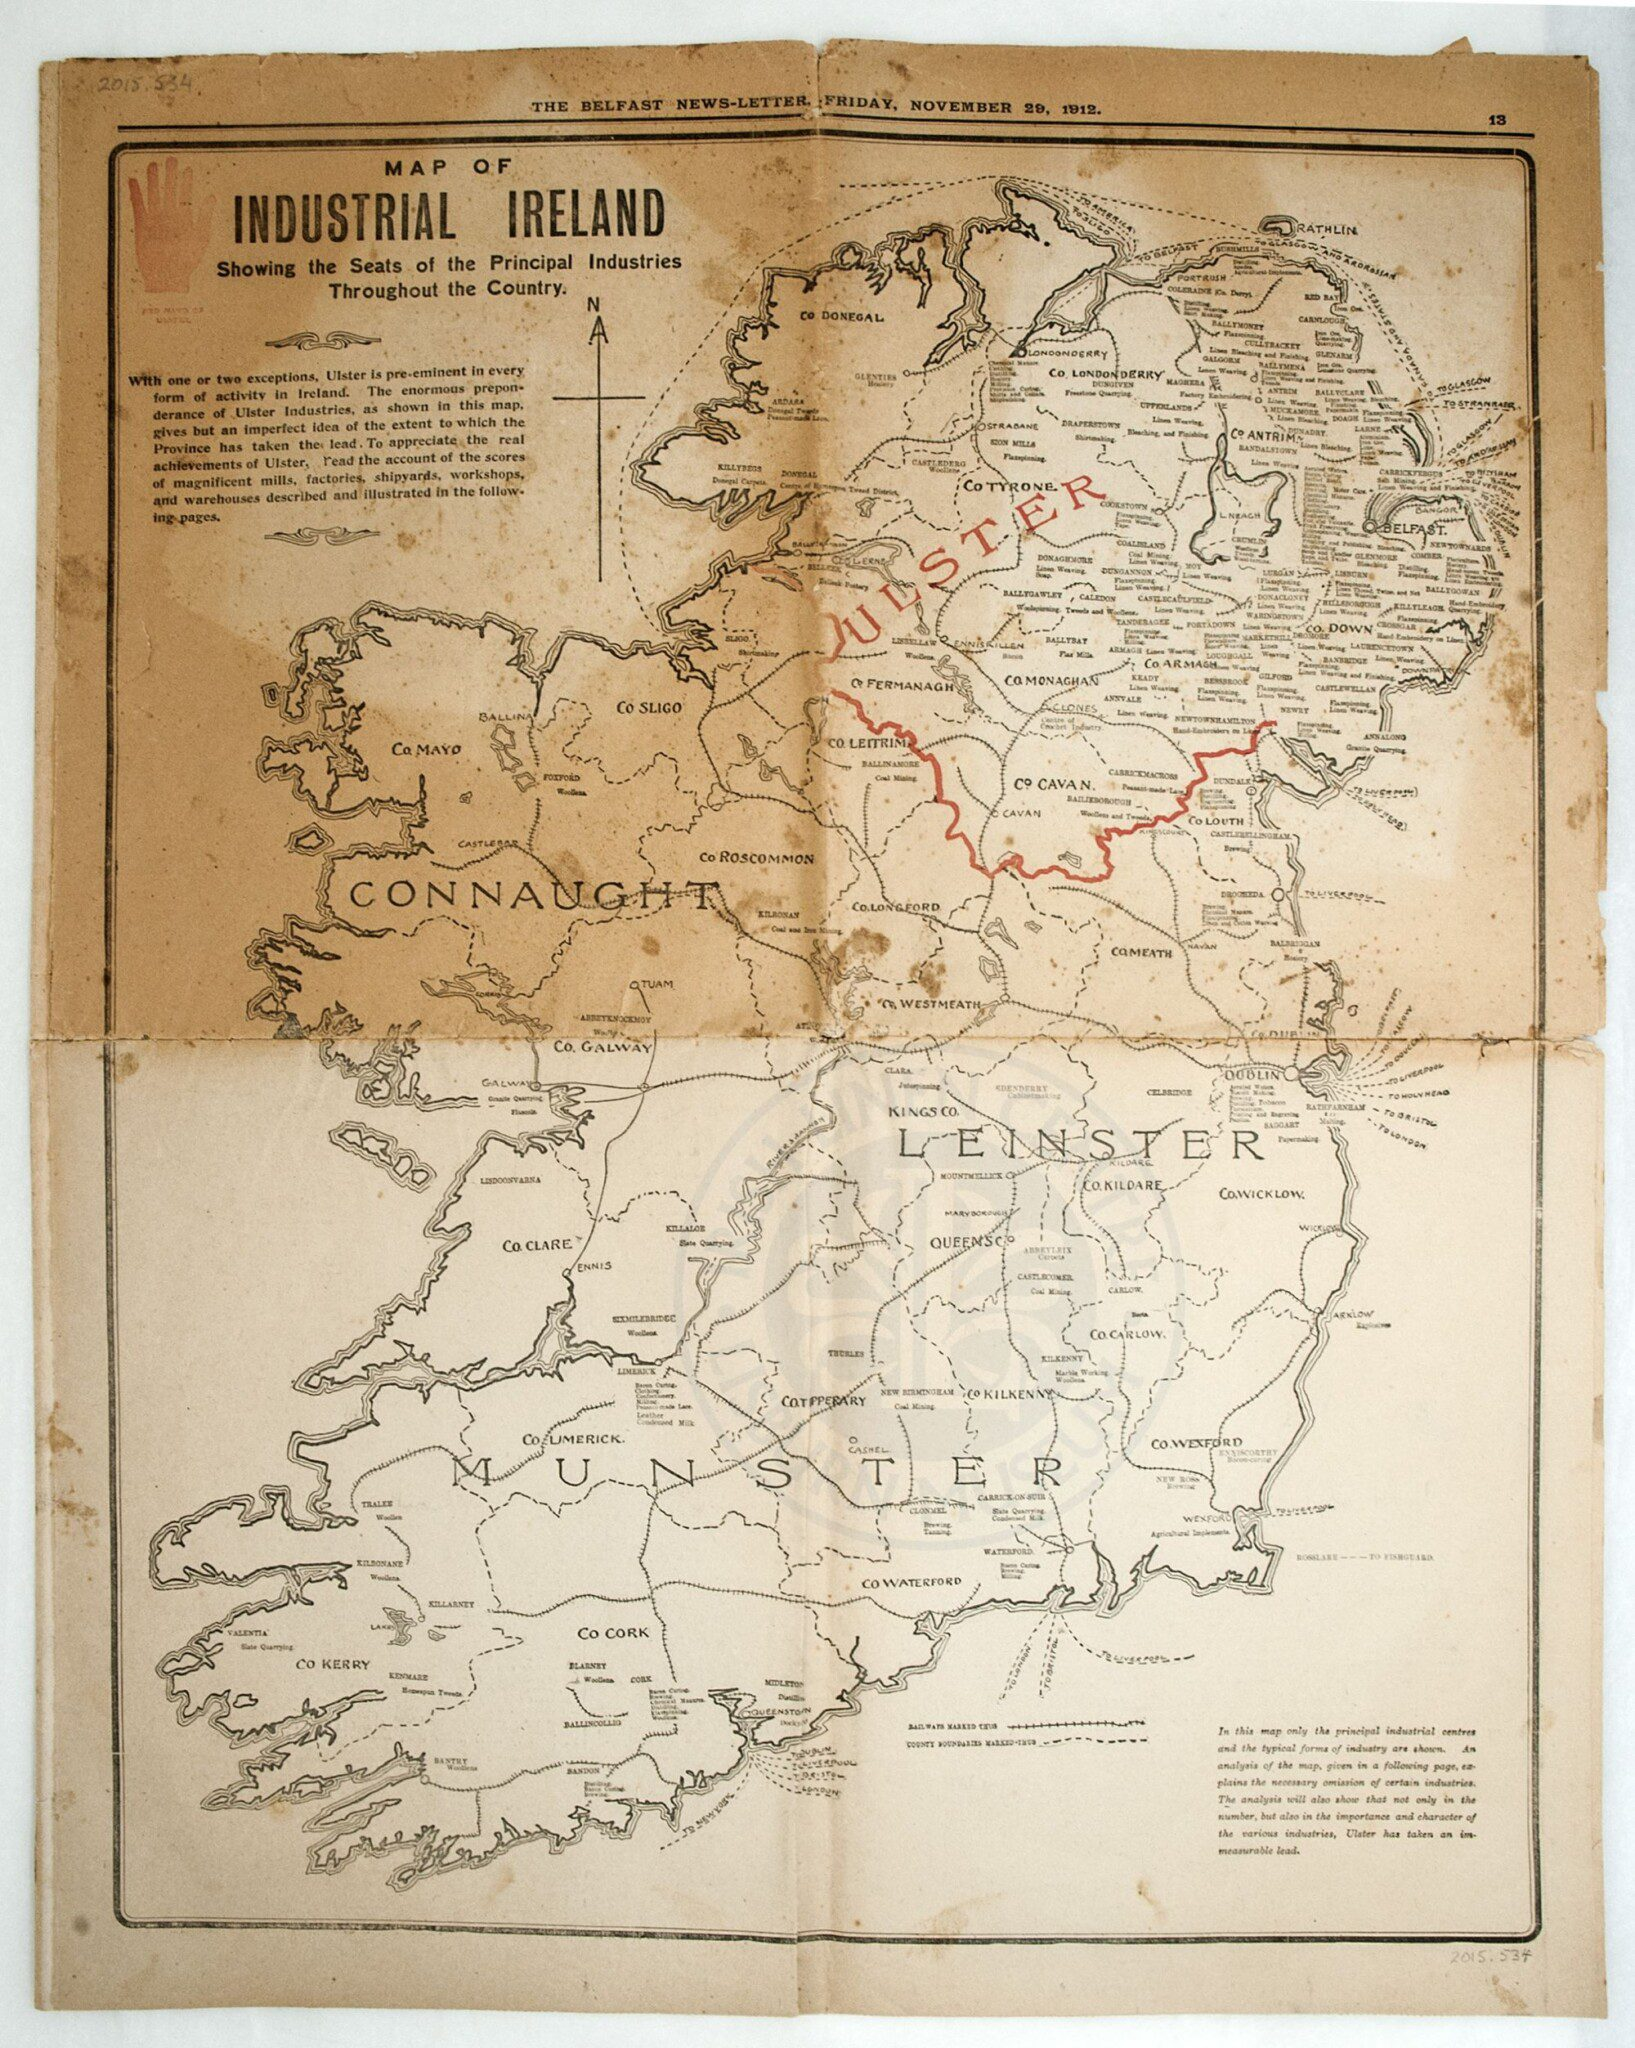 Map of Industrial Ulster - Lisburn Museum Collection 1912